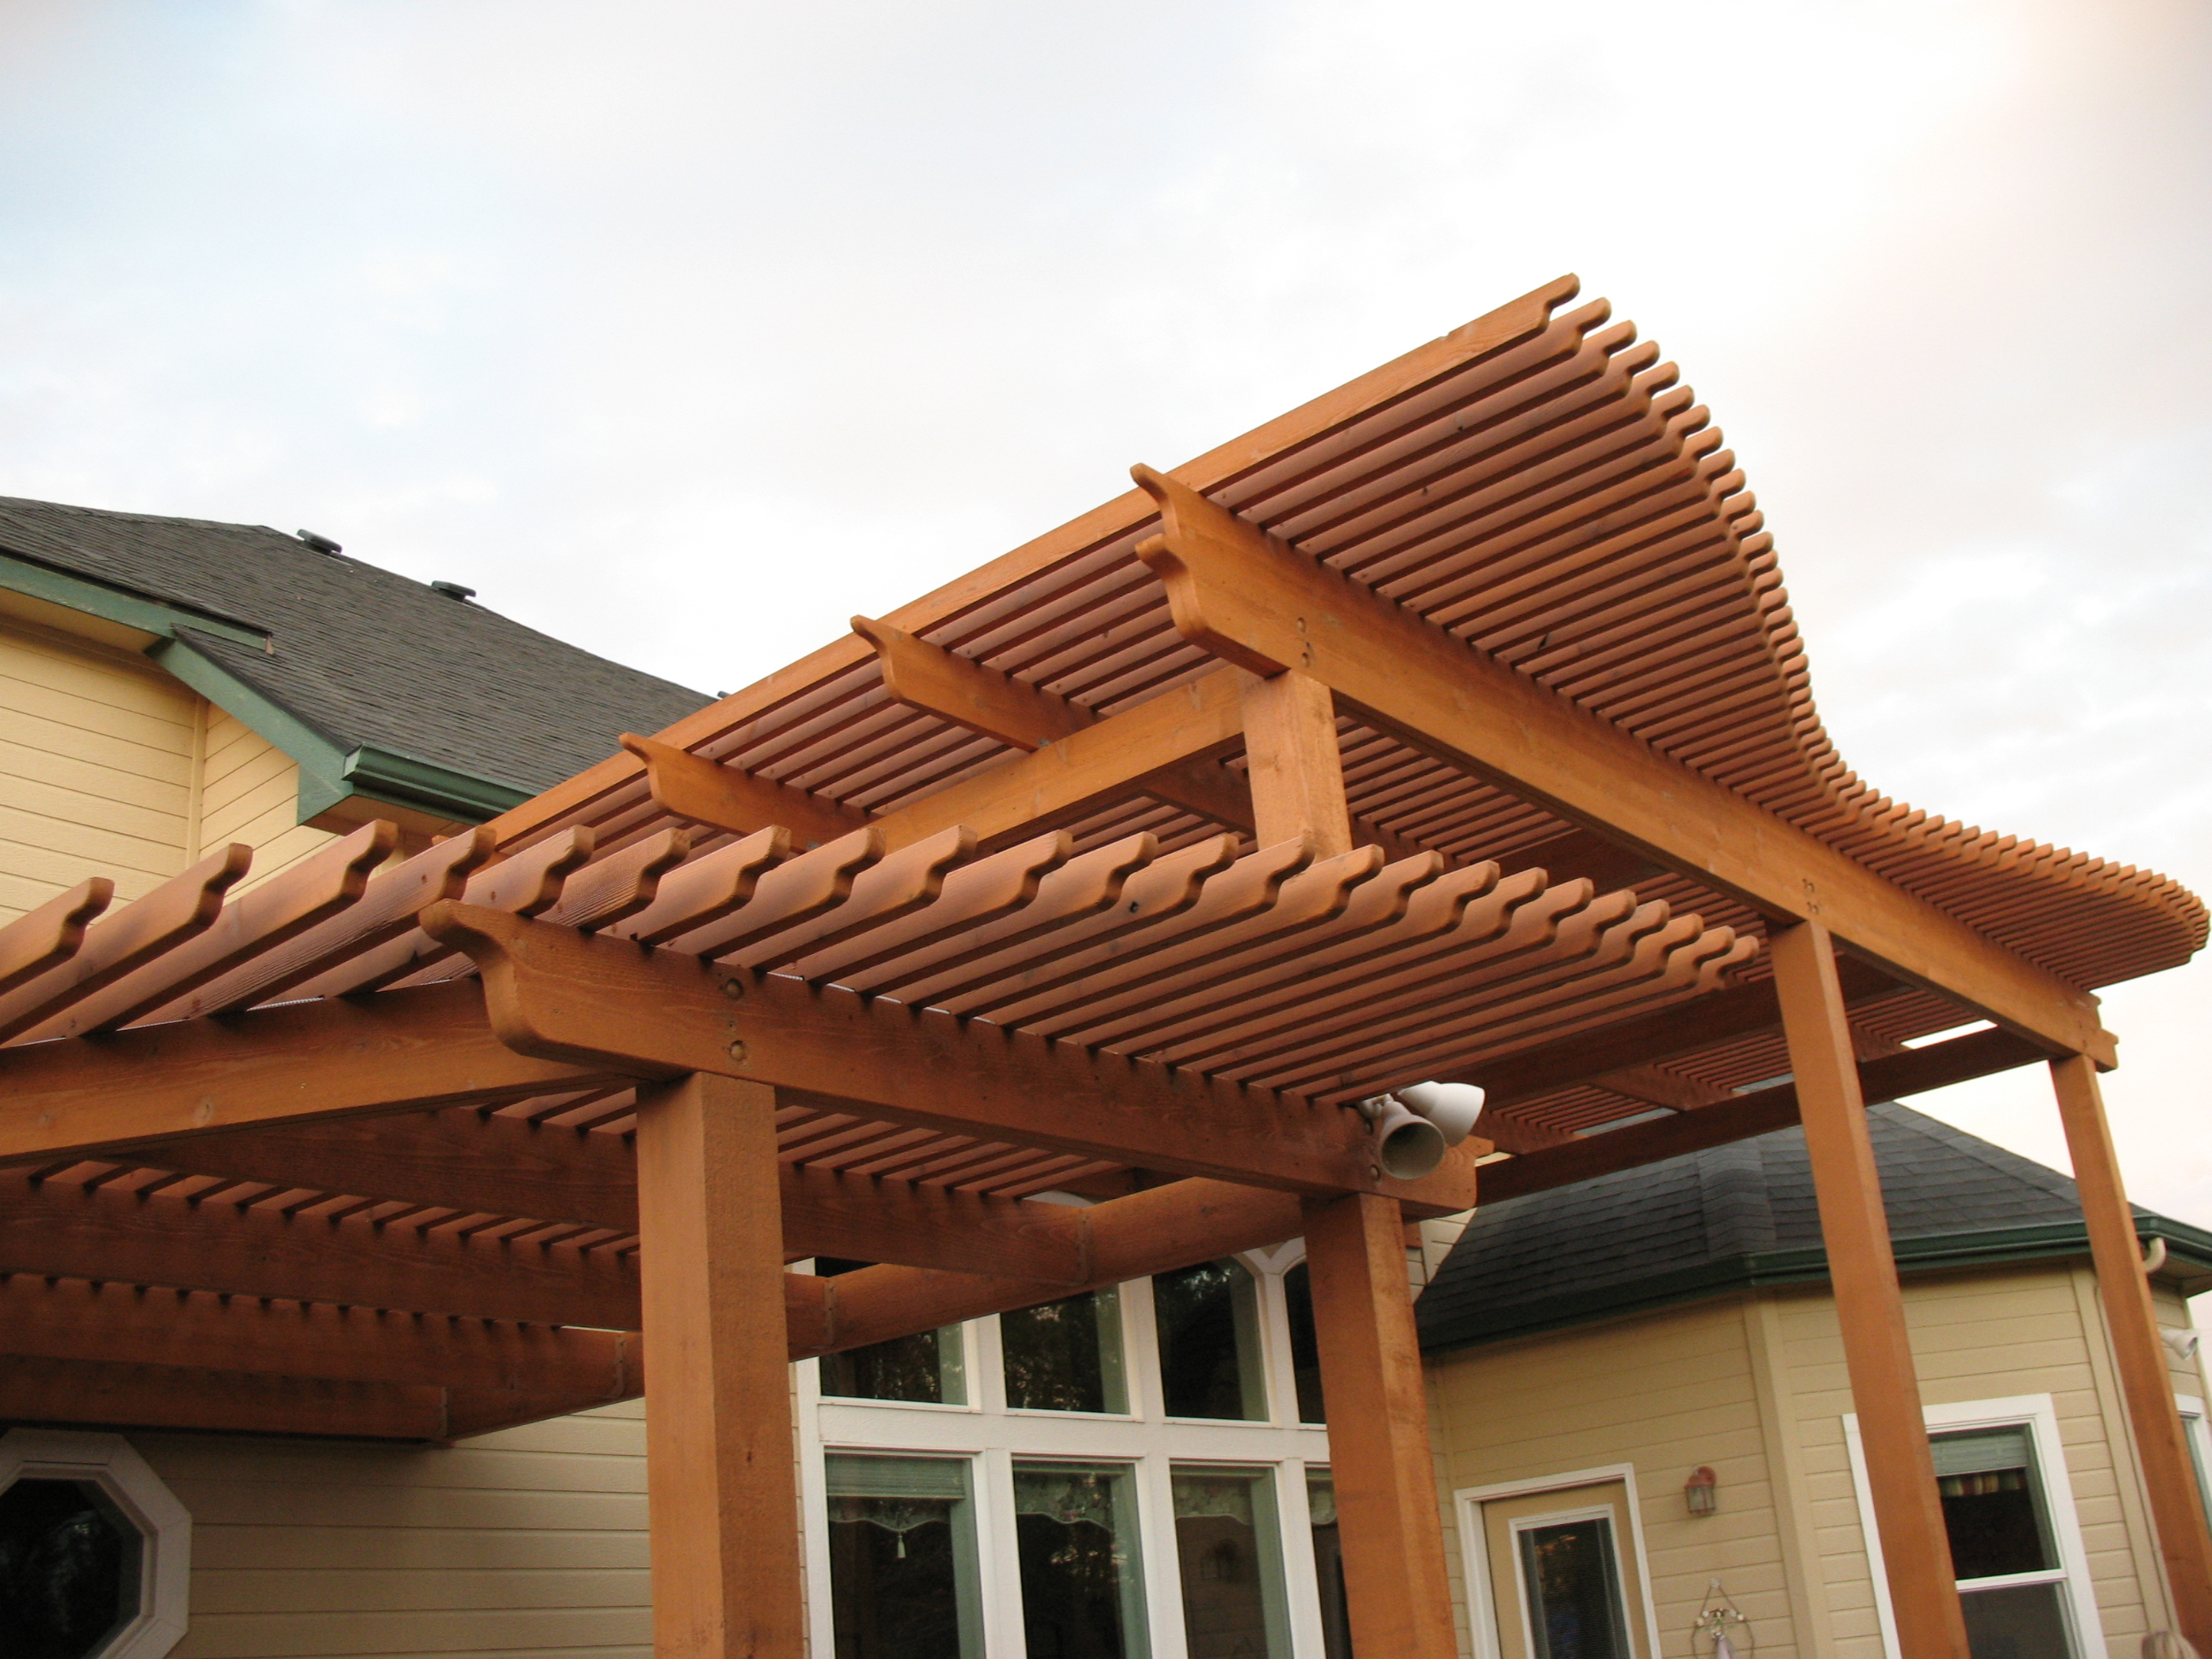 Natural Wooden Patio Covers - HomesFeed on Patio Cover Ideas Wood id=16605